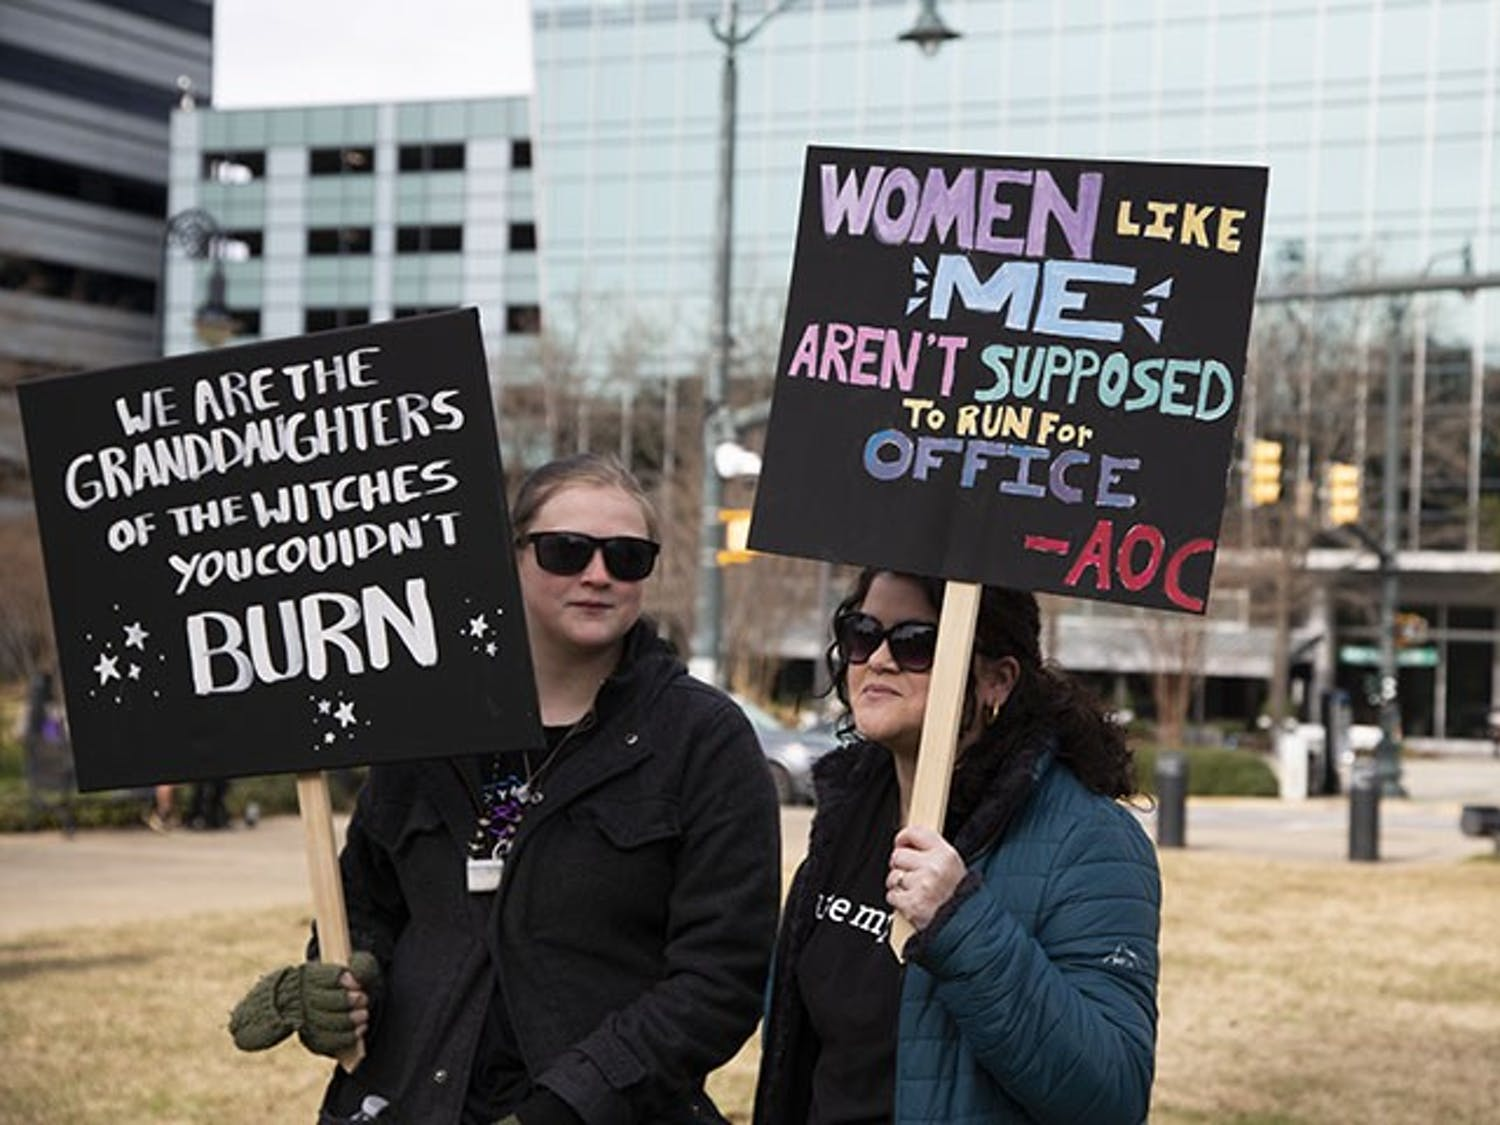 Emily Gunning, National lines on Mental Illness and Rachel Oxley, Receptionist Emily Gunning (right) and Rachel Oxley (left), holding their signs during the march, were there to show their opinions on women's rights.